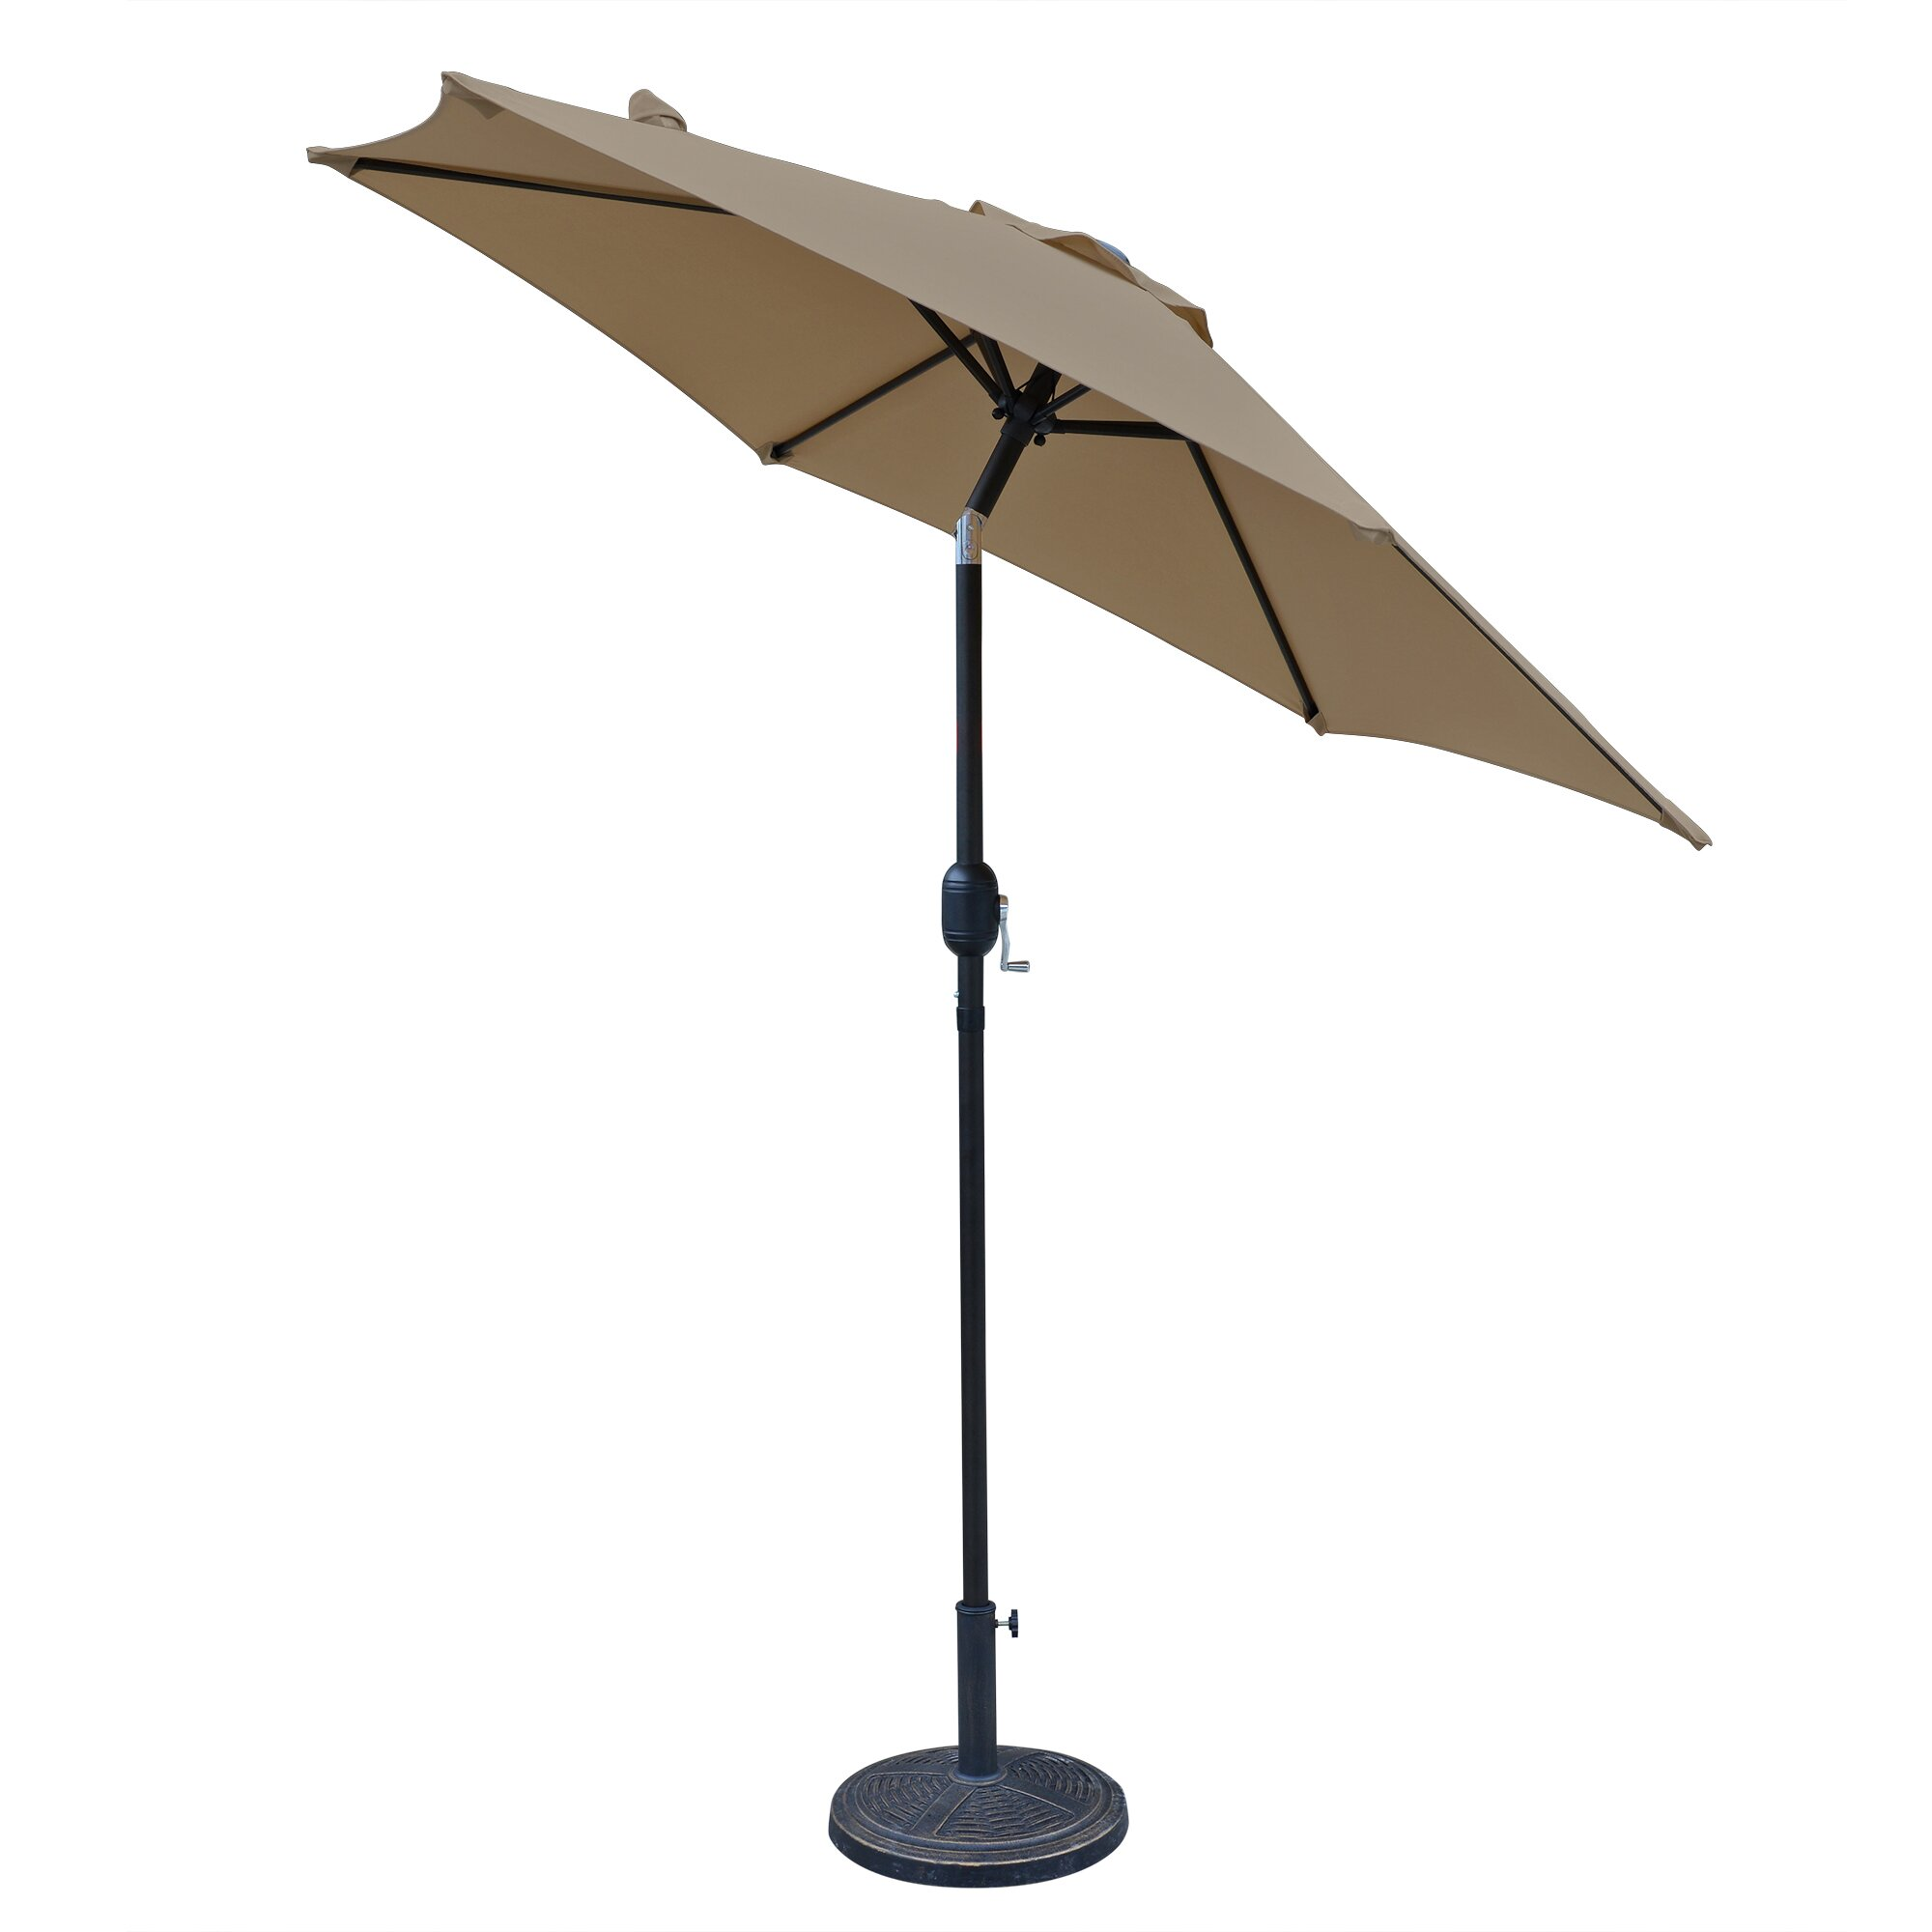 Island Umbrella 7 5 Ft Bistro Market Umbrella Wayfair Ca